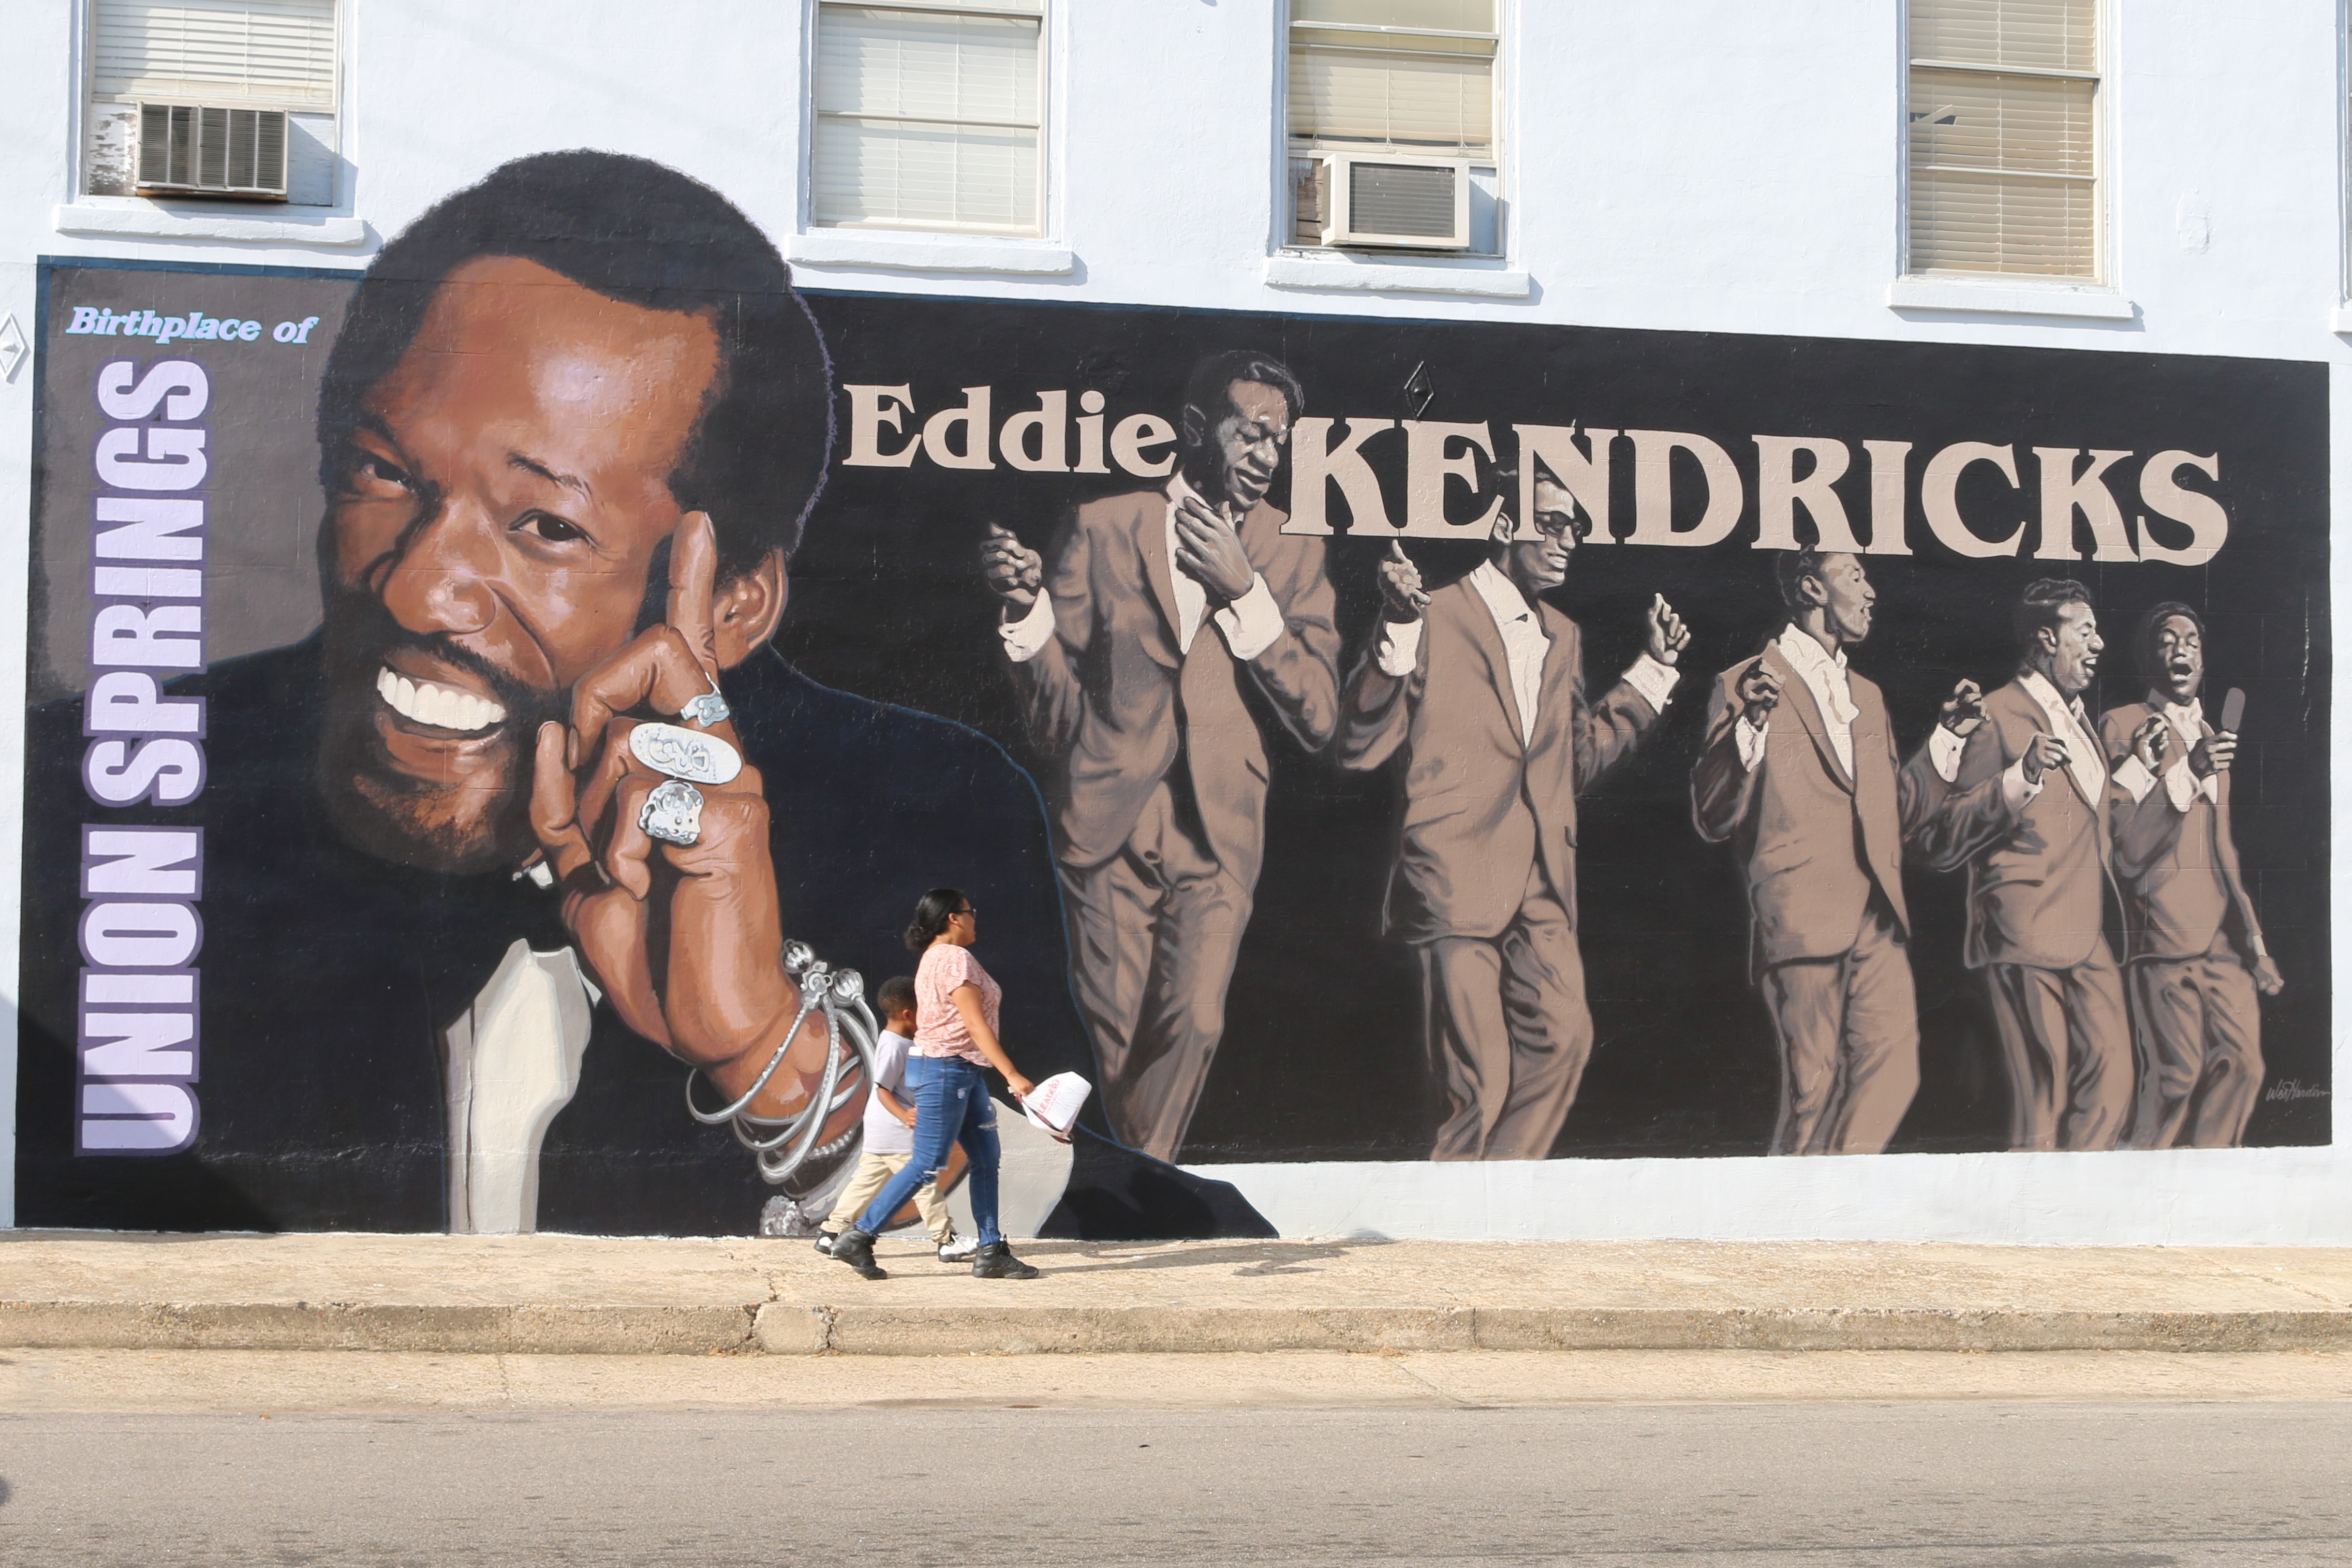 Eddie Kendricks Mural - Murals on Main